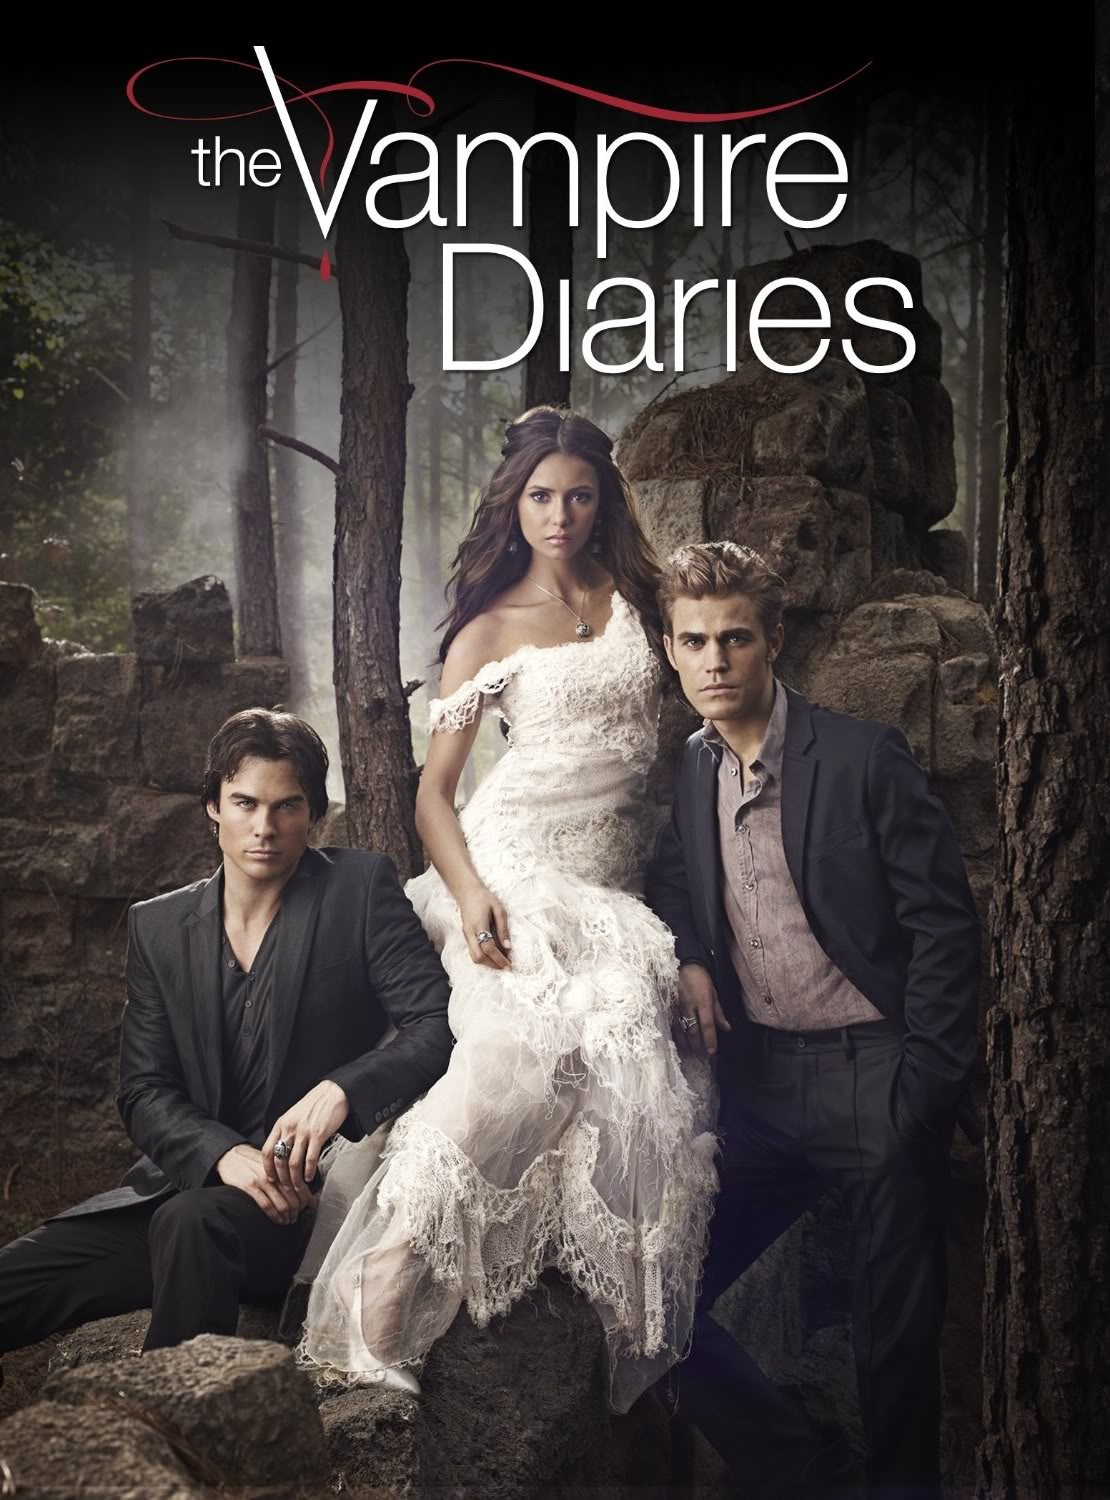 Assistir The Vampire Diaries 7x02 - Never Let Me Go Online